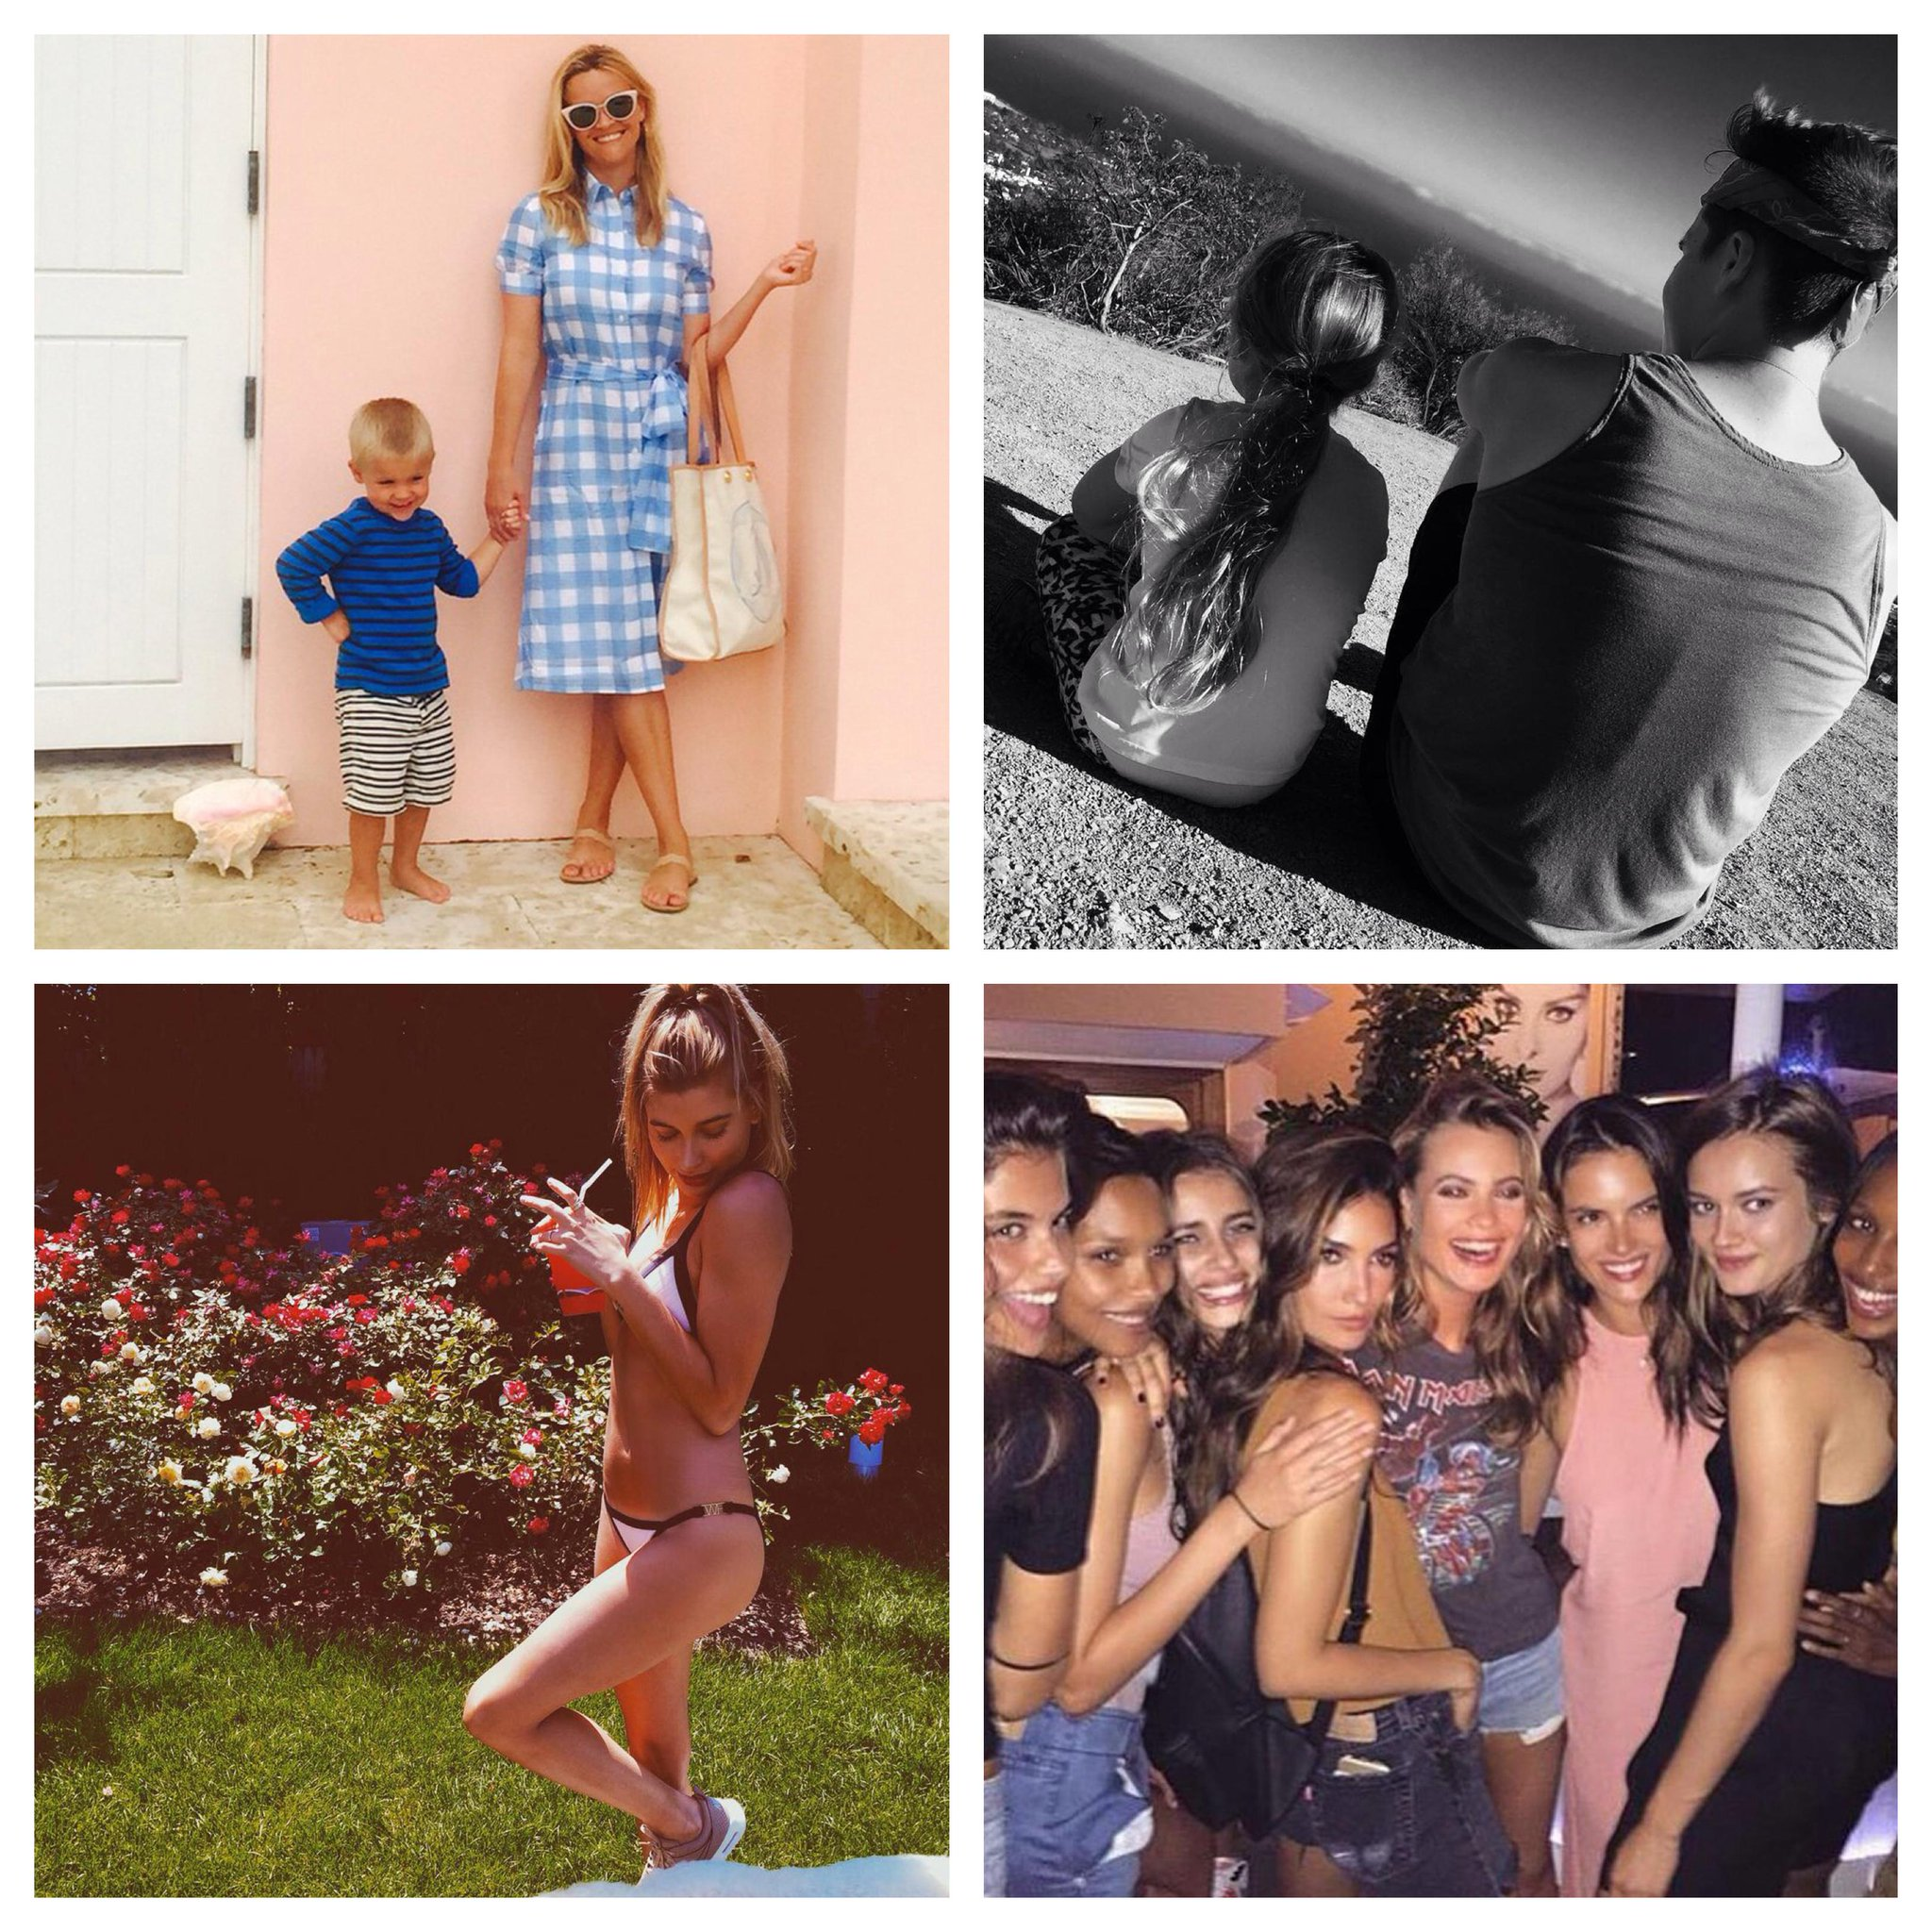 In need of some sun? See how these Insta celebs are soaking up the rays http://t.co/qpBtmVc63B http://t.co/t3lZOiWcae